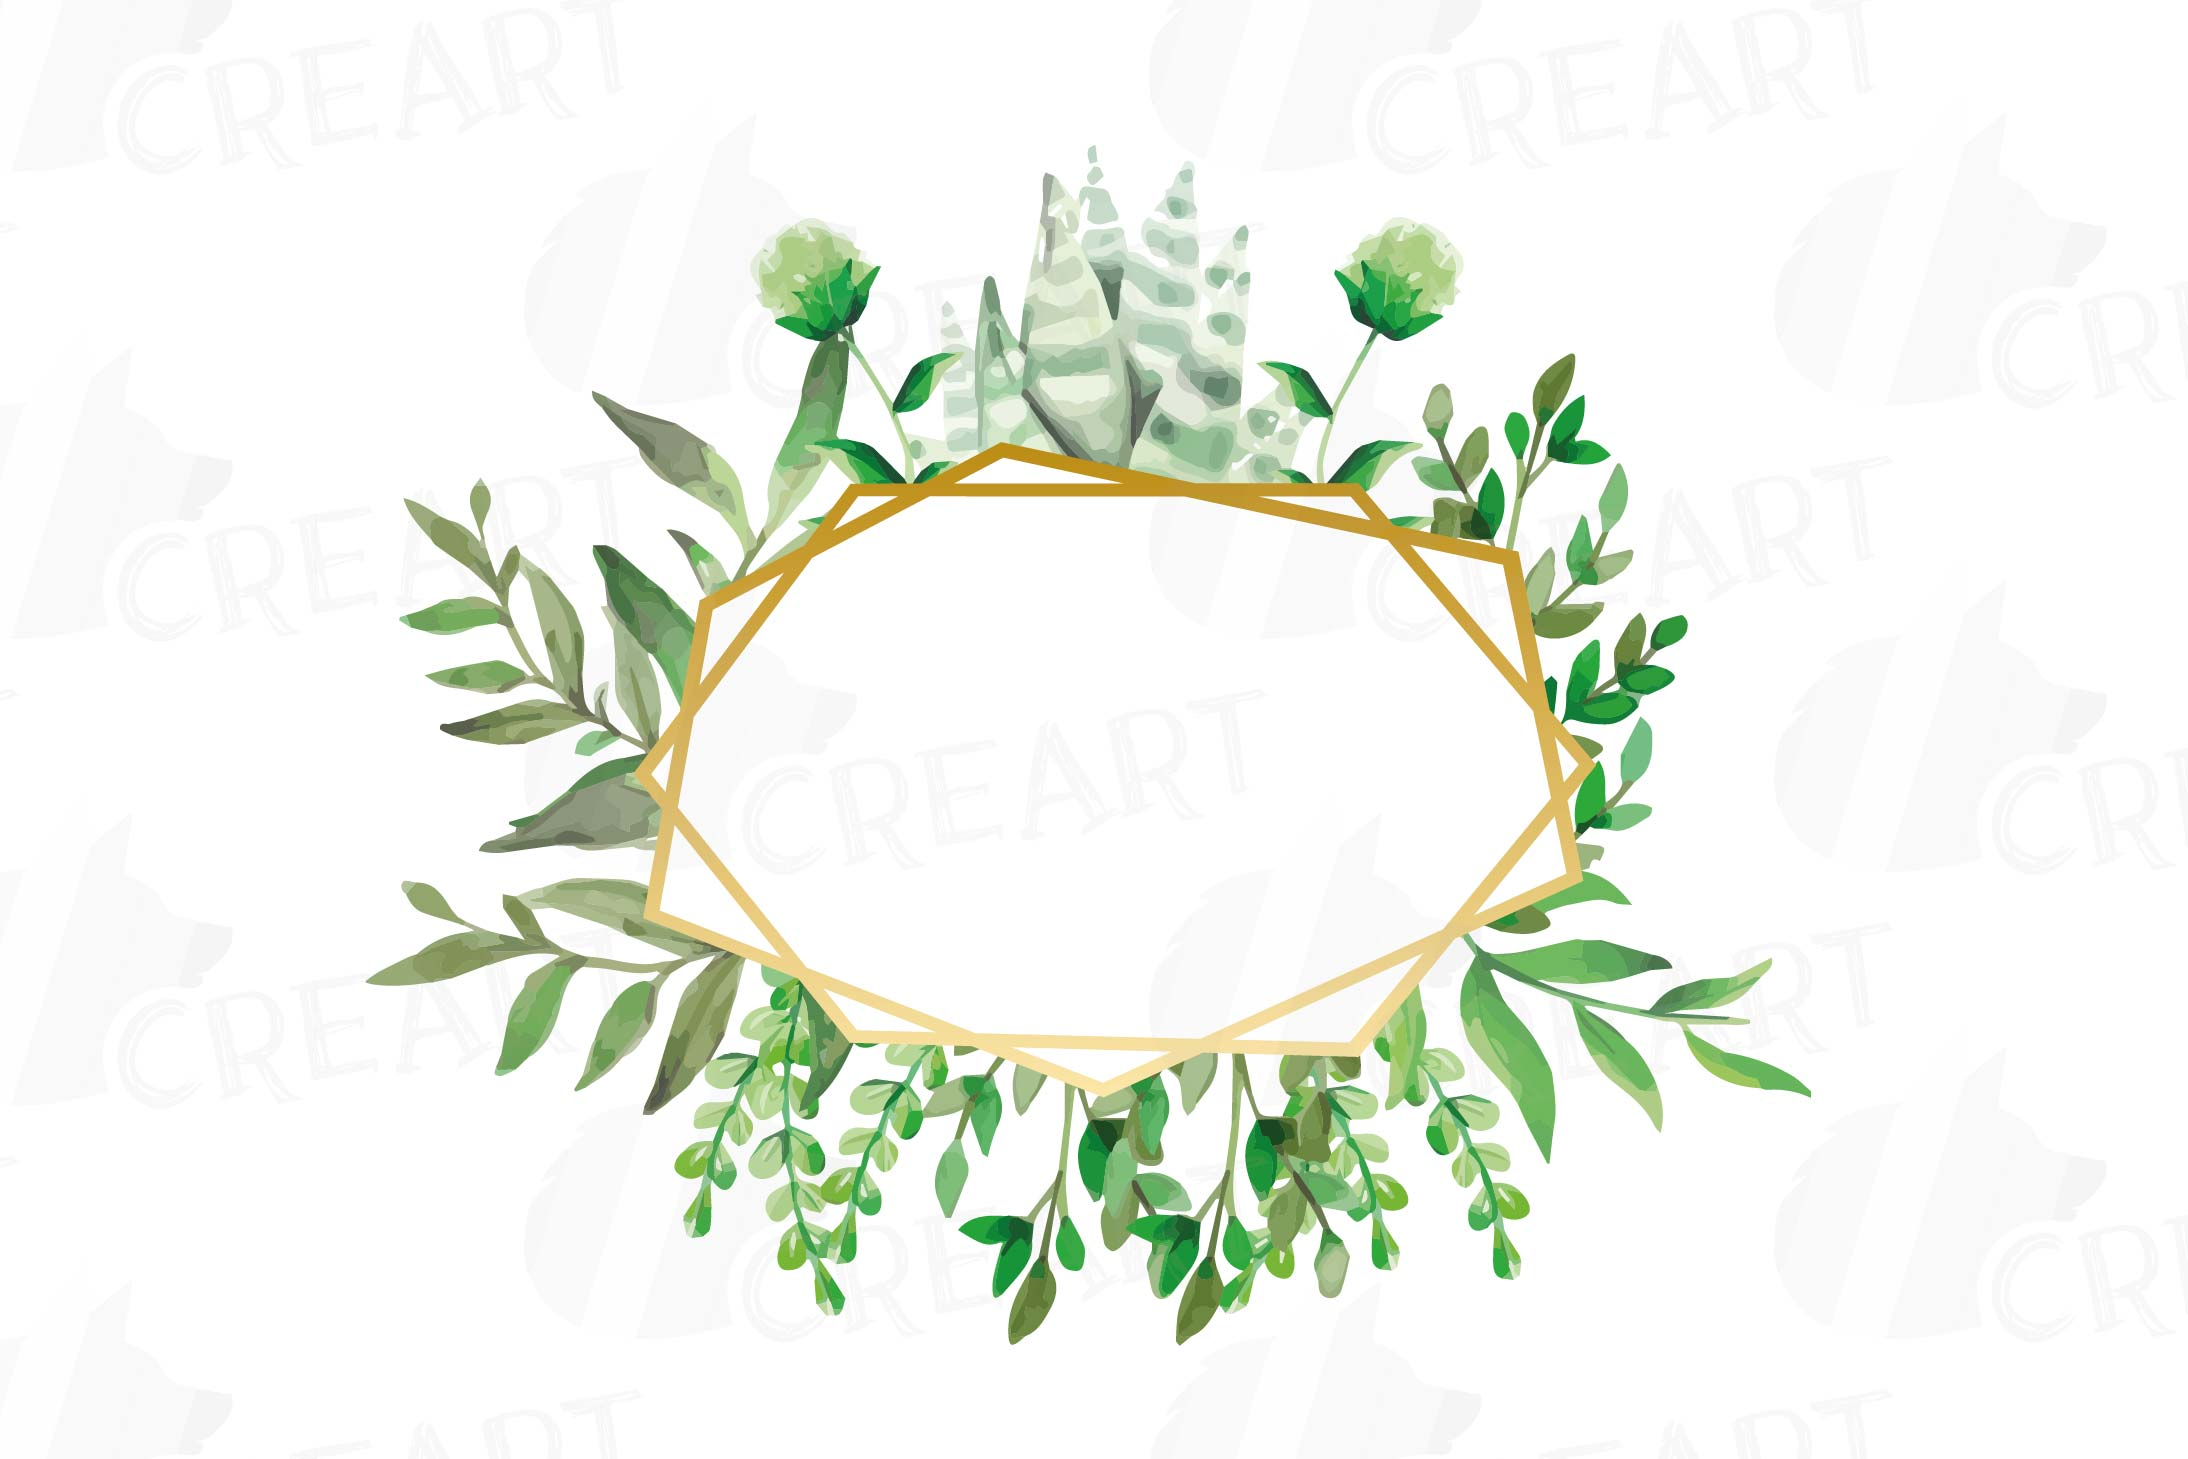 image regarding Printable Border referred to as Watercolor floral wild leaves frames, printable borders